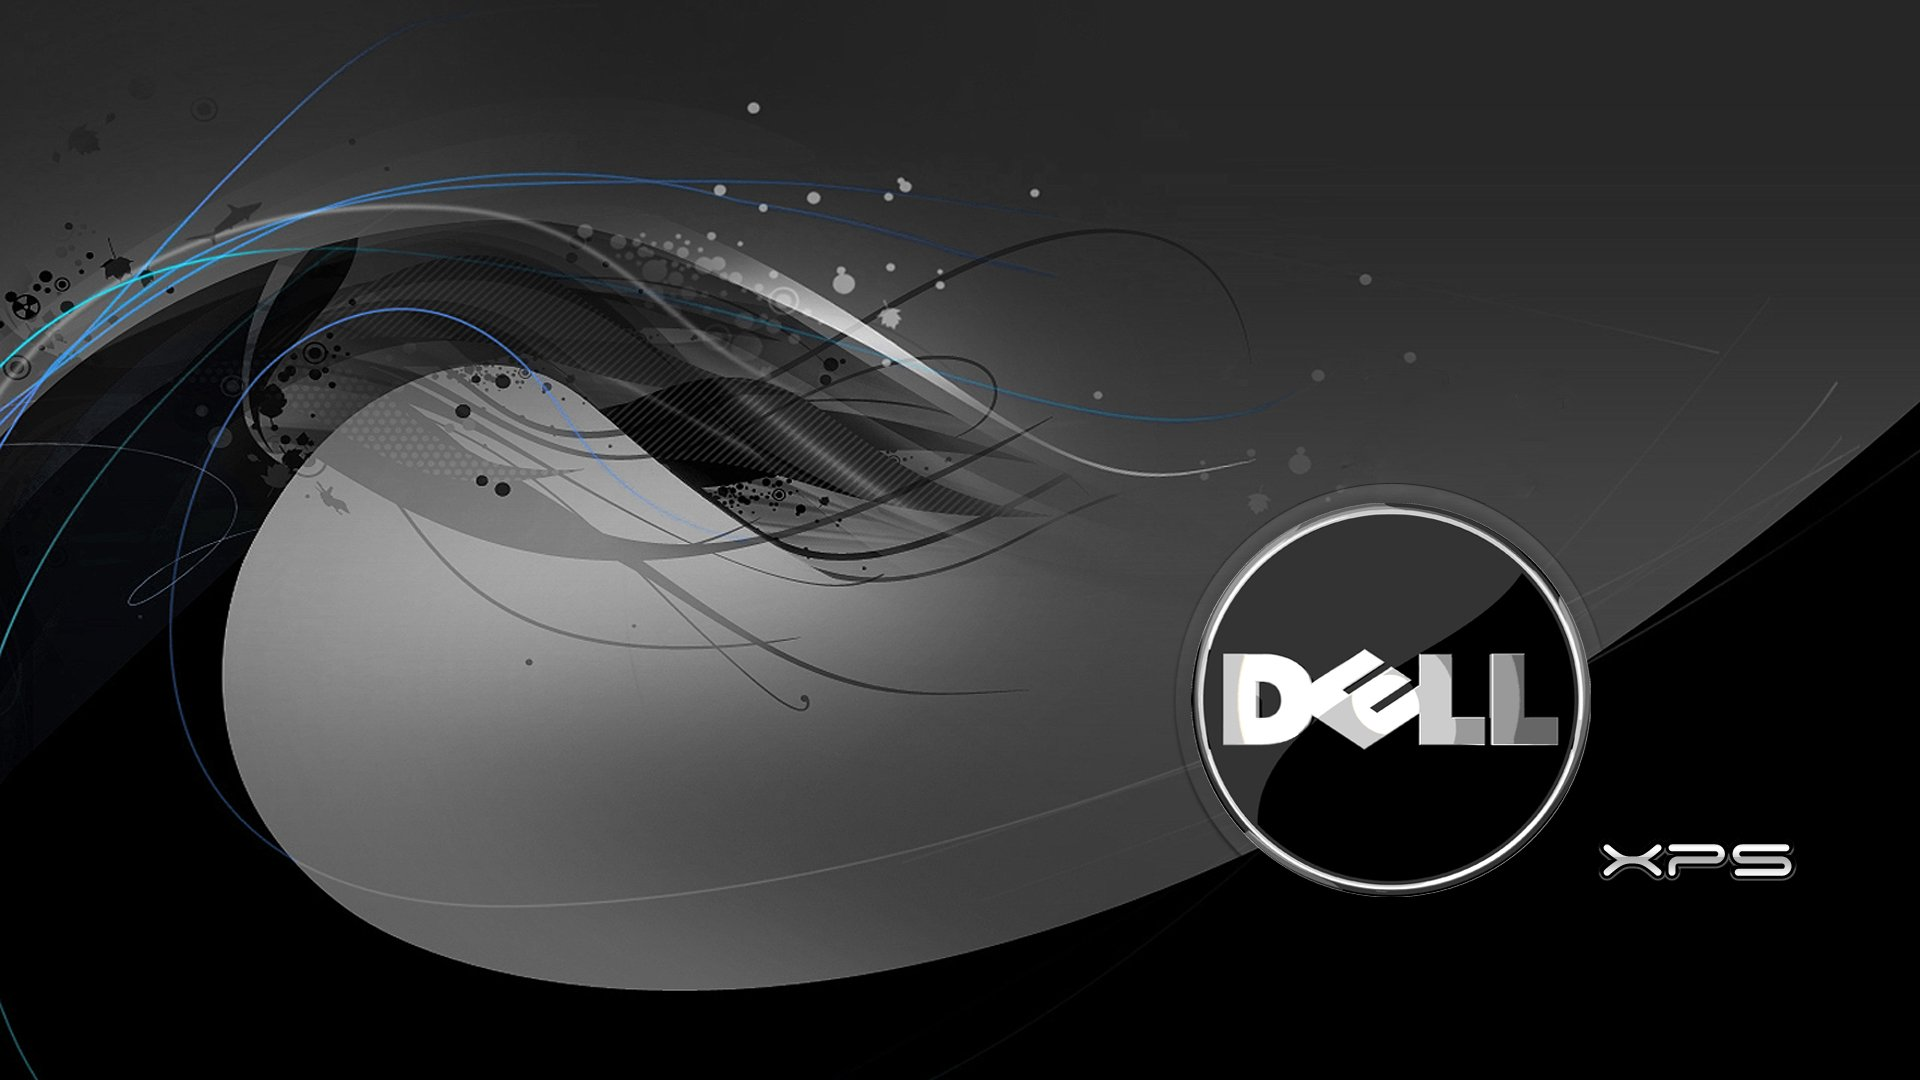 dell gaming wallpaper,automotive design,font,technology,stock photography,graphics